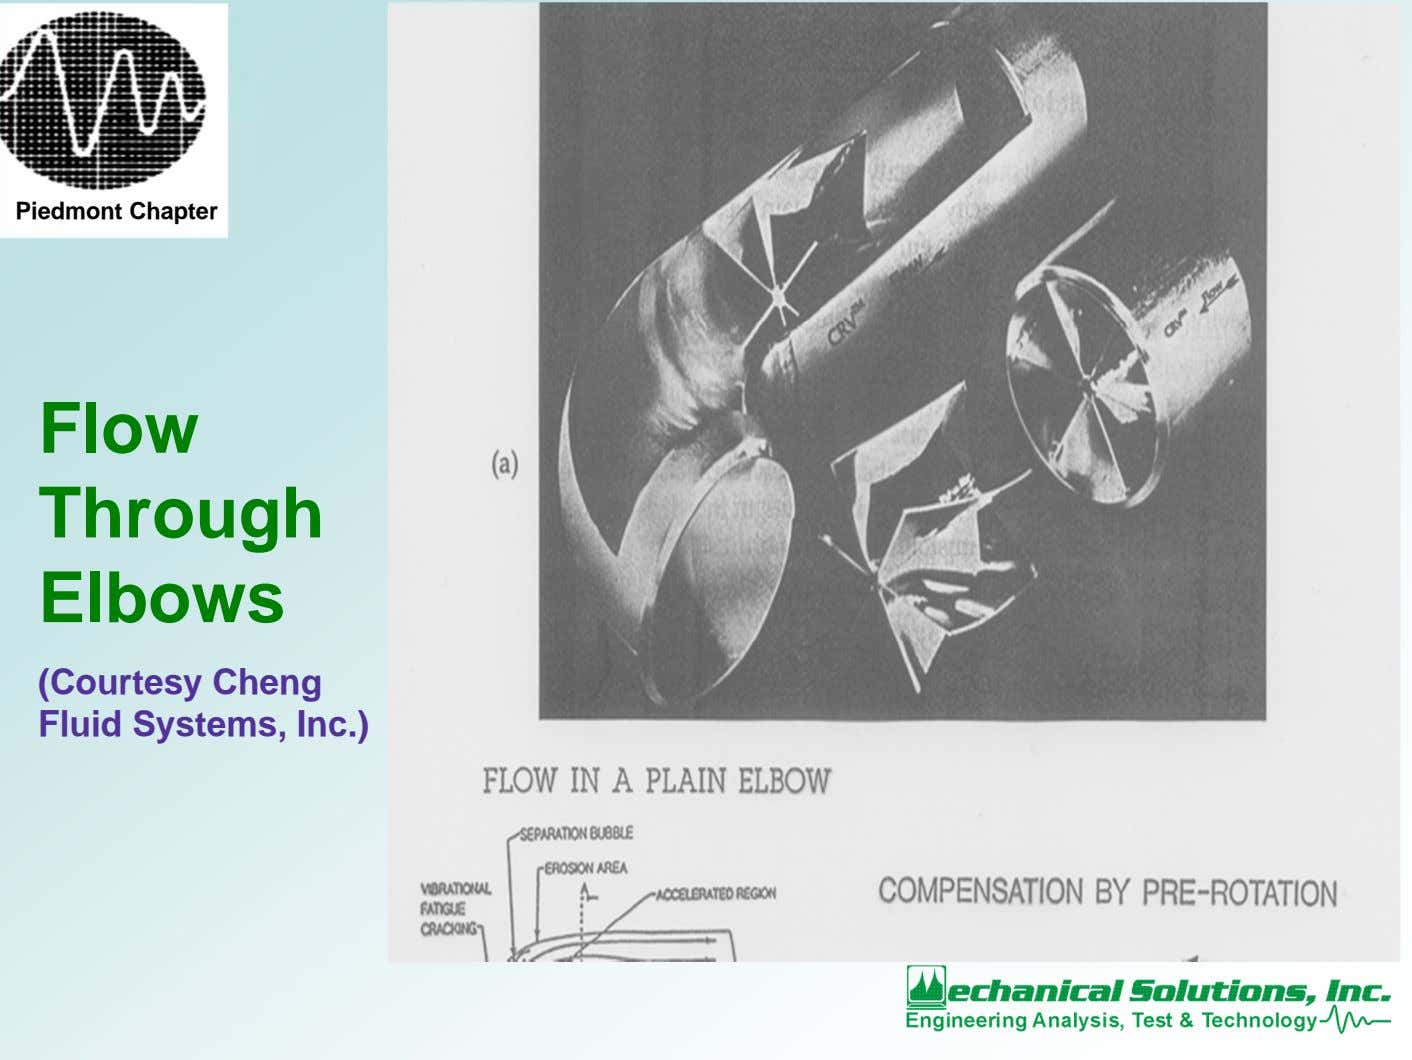 Piedmont Chapter Flow Through Elbows (Courtesy Cheng Fluid Systems, Inc.)